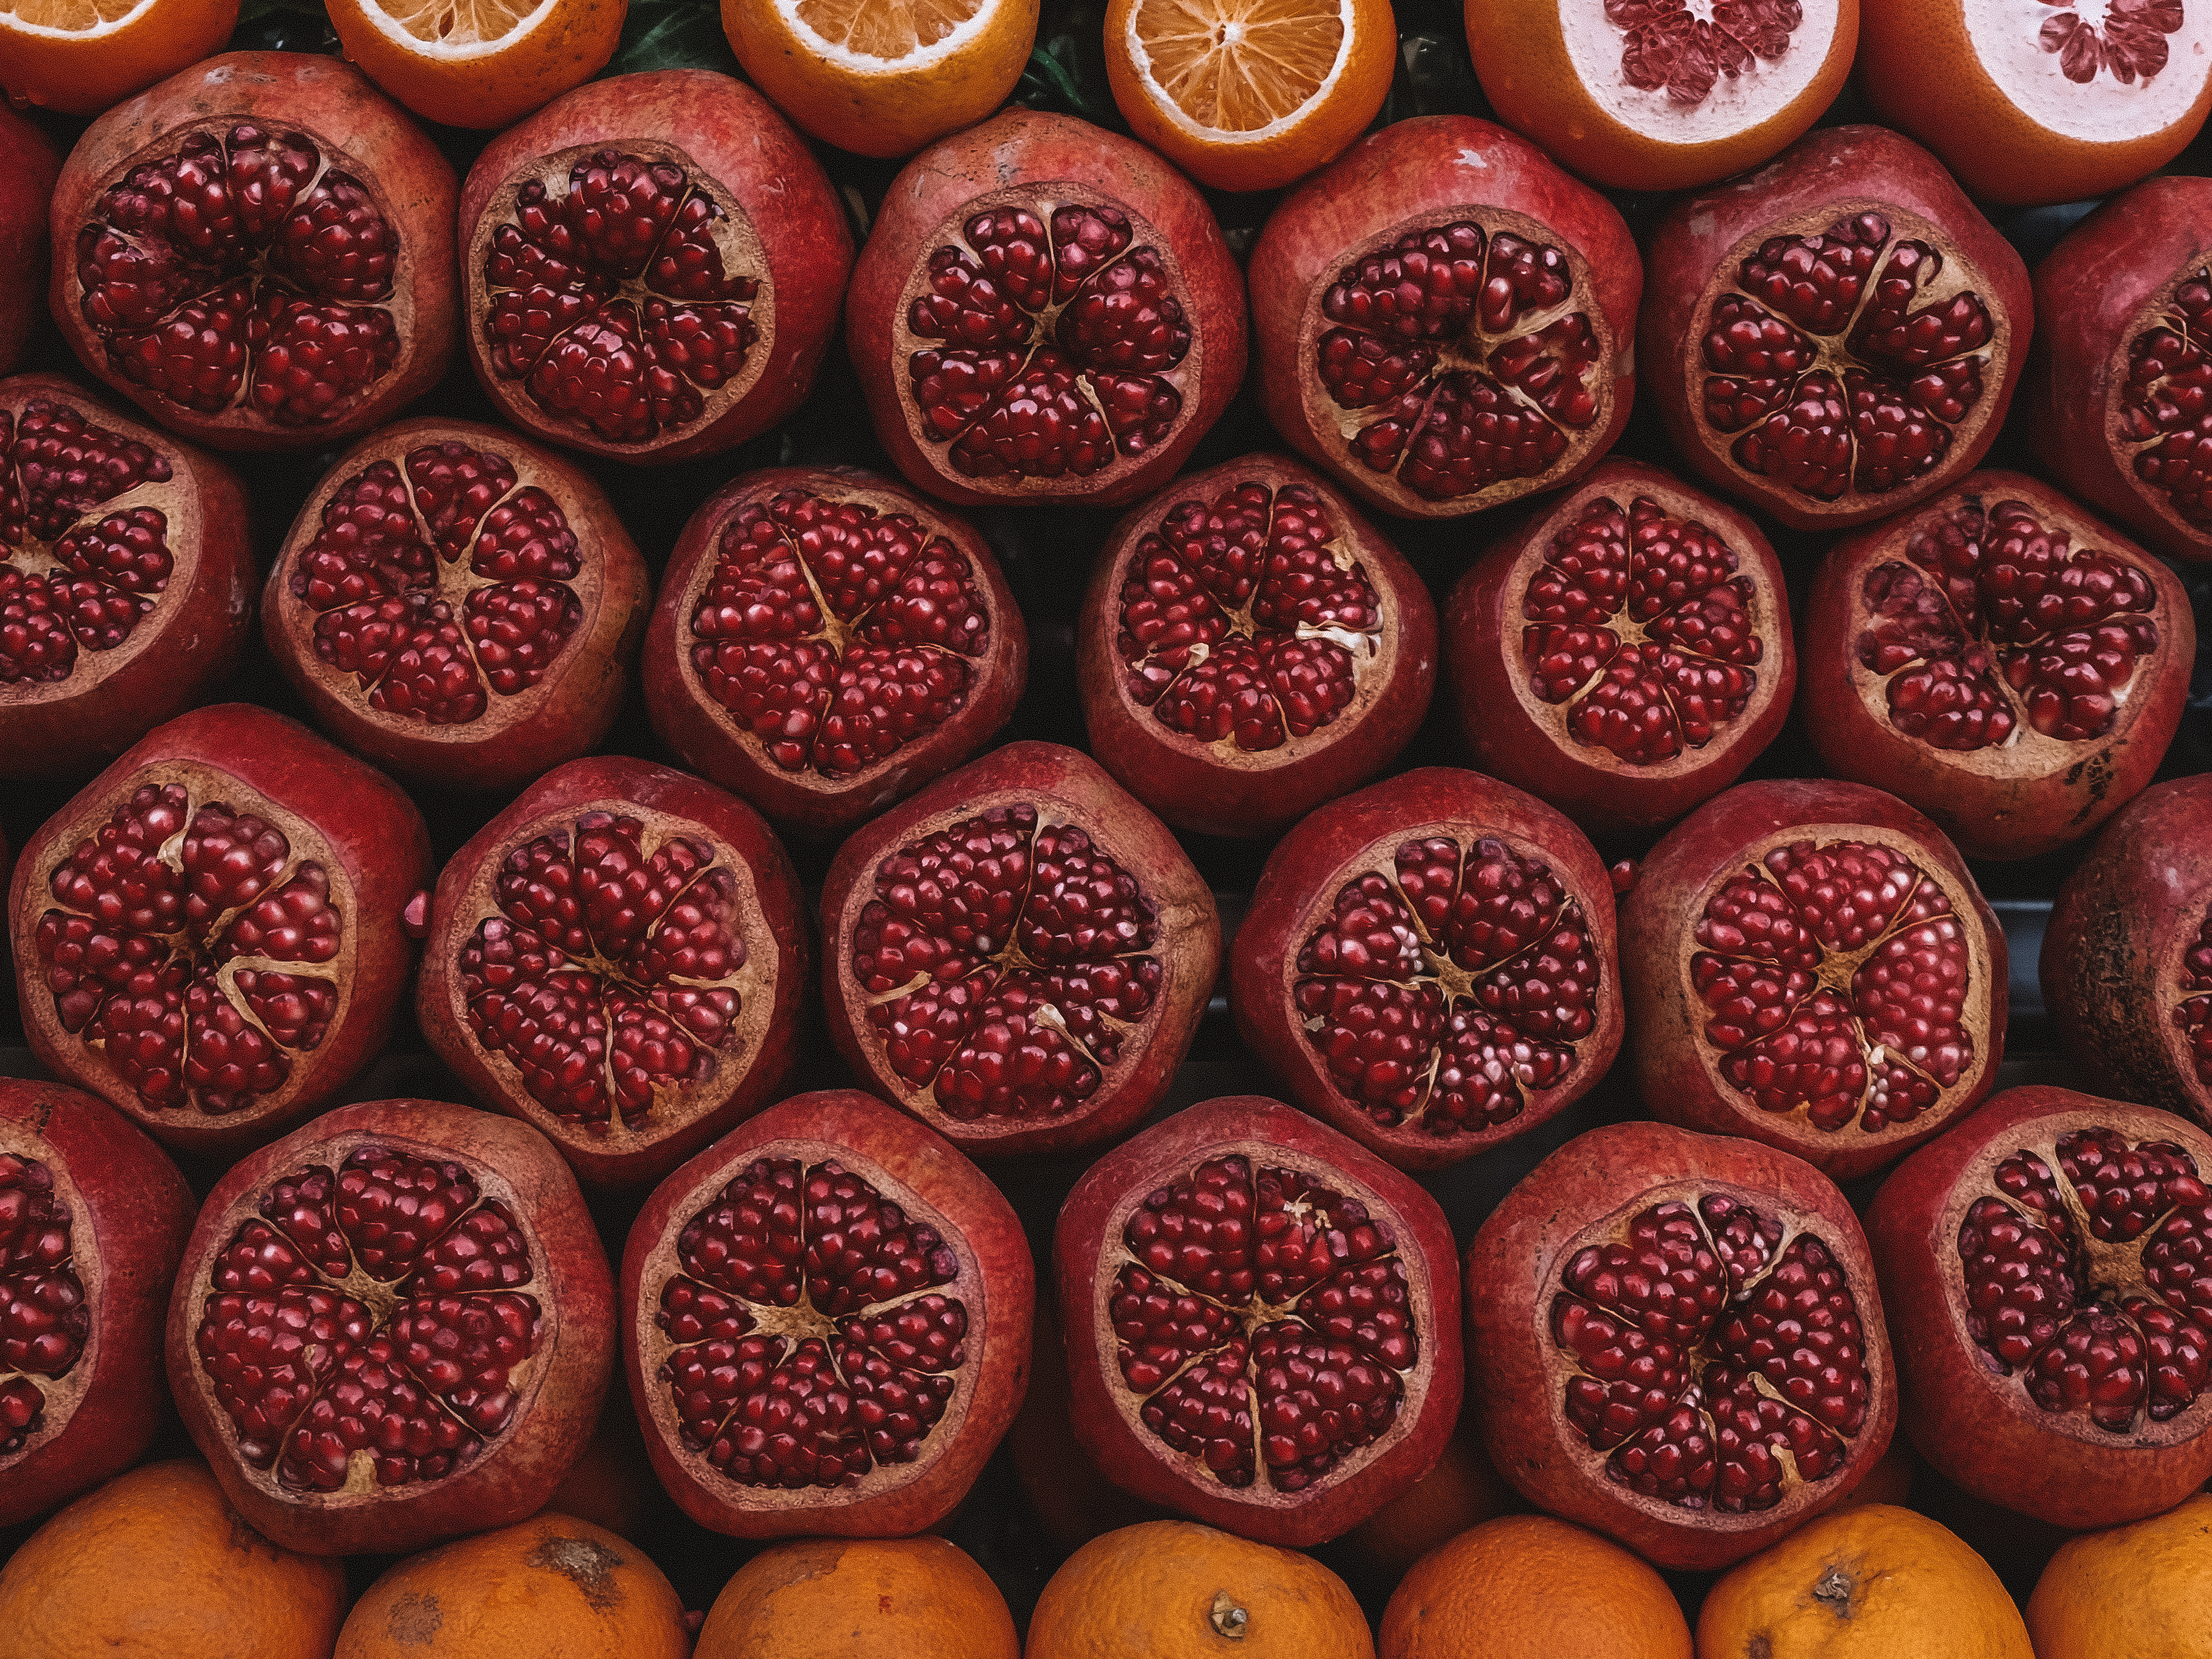 fruits_istanbul